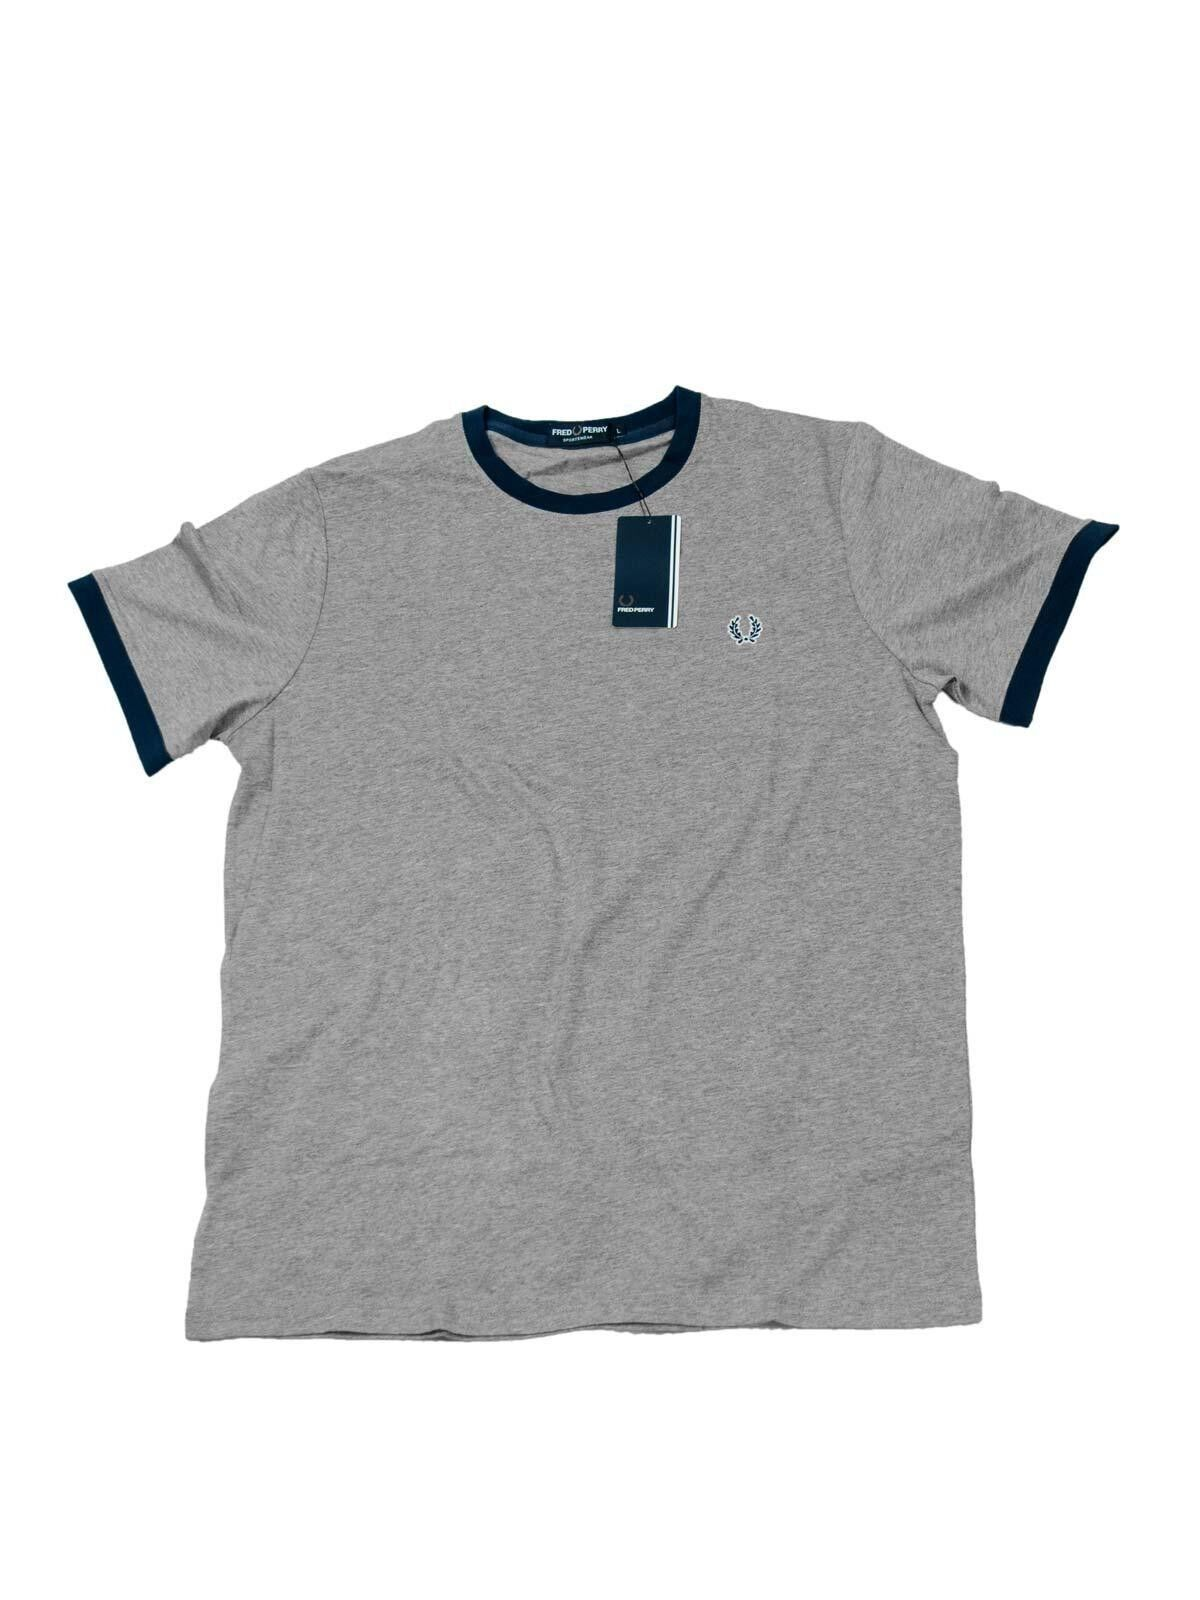 Fred Perry T-Shirt grey M7253 395   M9614 420  5648